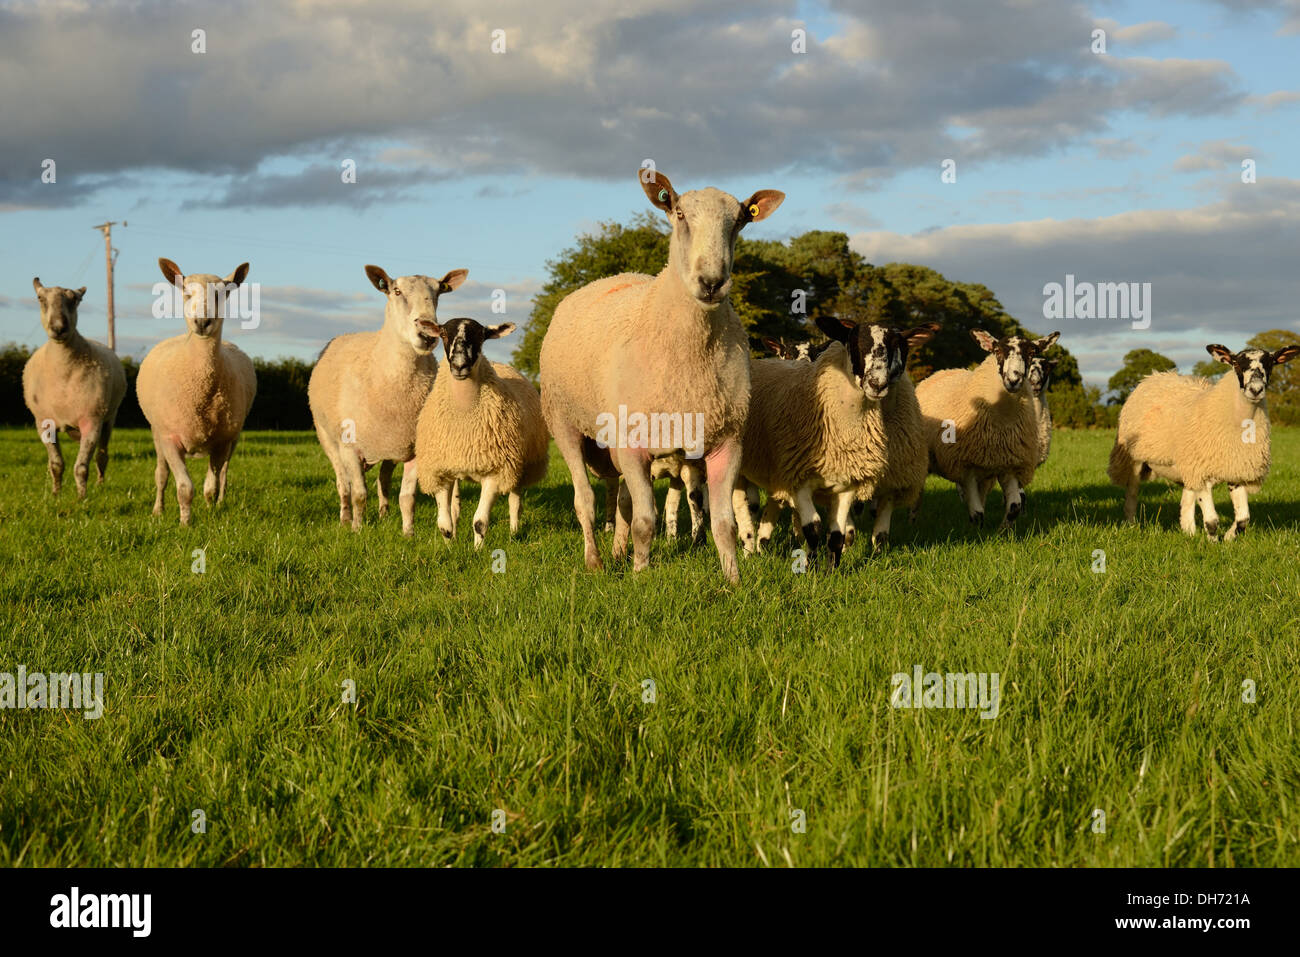 Group of sheep heading for the camera in patrol formation. - Stock Image